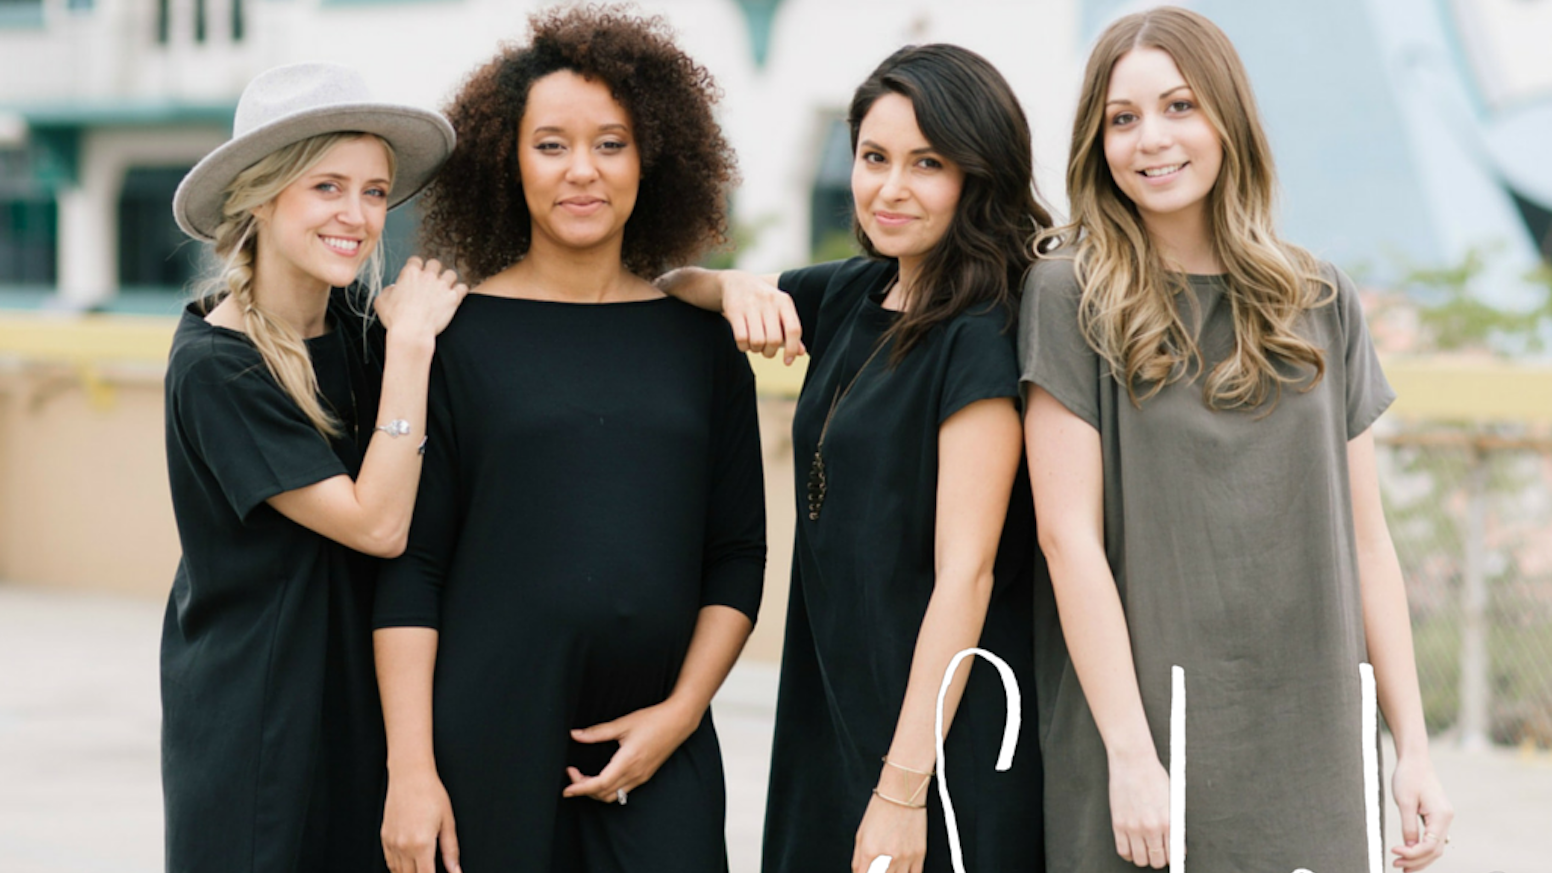 When our bodies change, our styles shouldn't have to. Sotela is designed for the everyday ever-changing you. The Essential Dresses span multiple sizes leaving room for our  dynamic bodies to stretch and grow in the beautiful and natural ways they do.